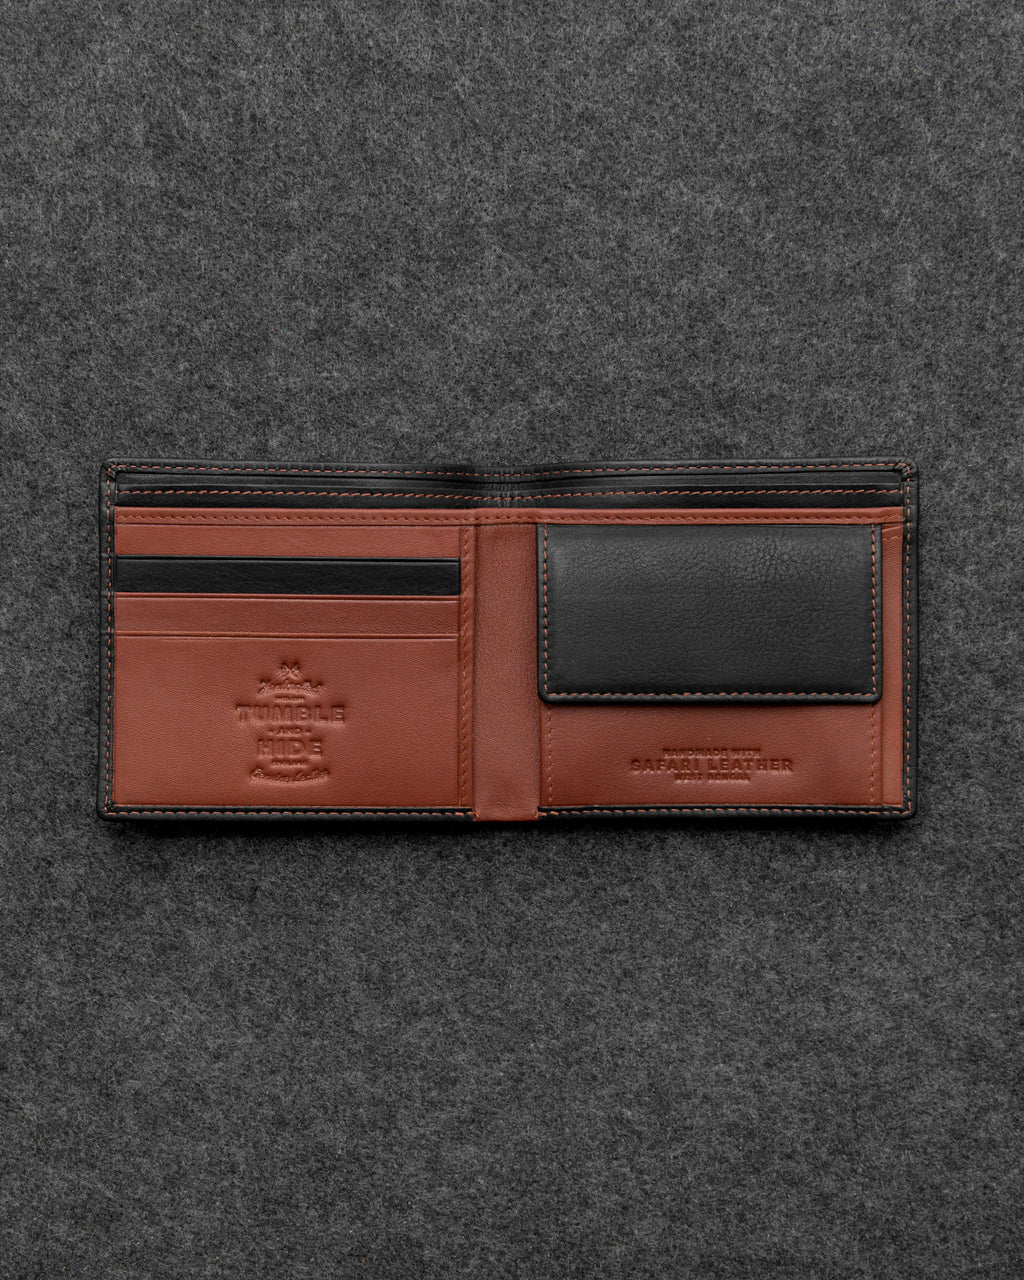 Safari Leather Basal Coin Pocket Wallet